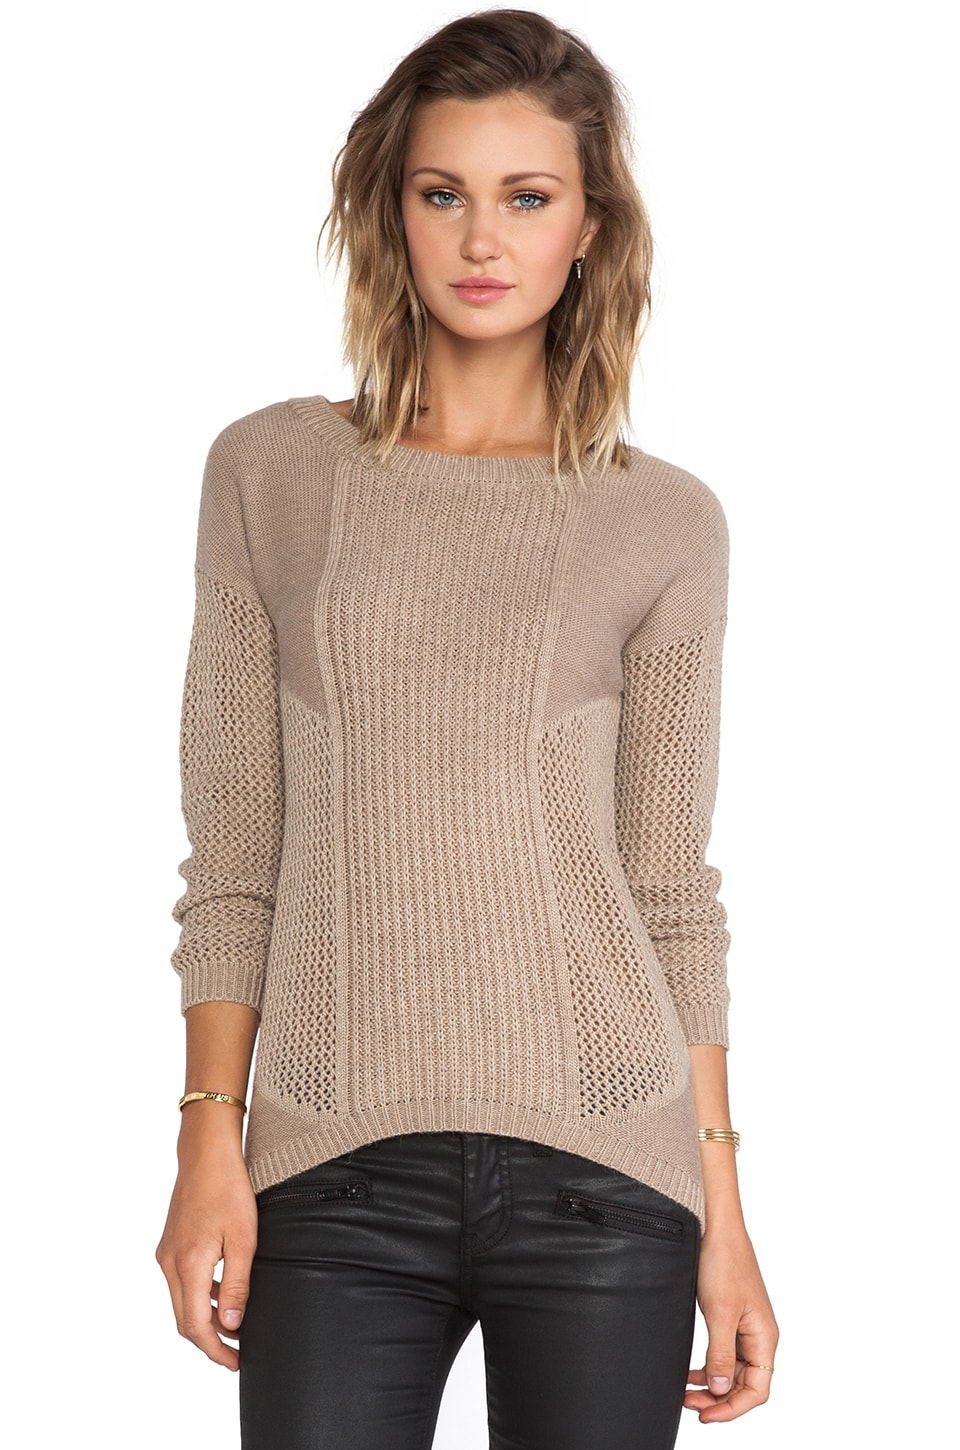 HEARTLOOM Rolo Sweater in Fox